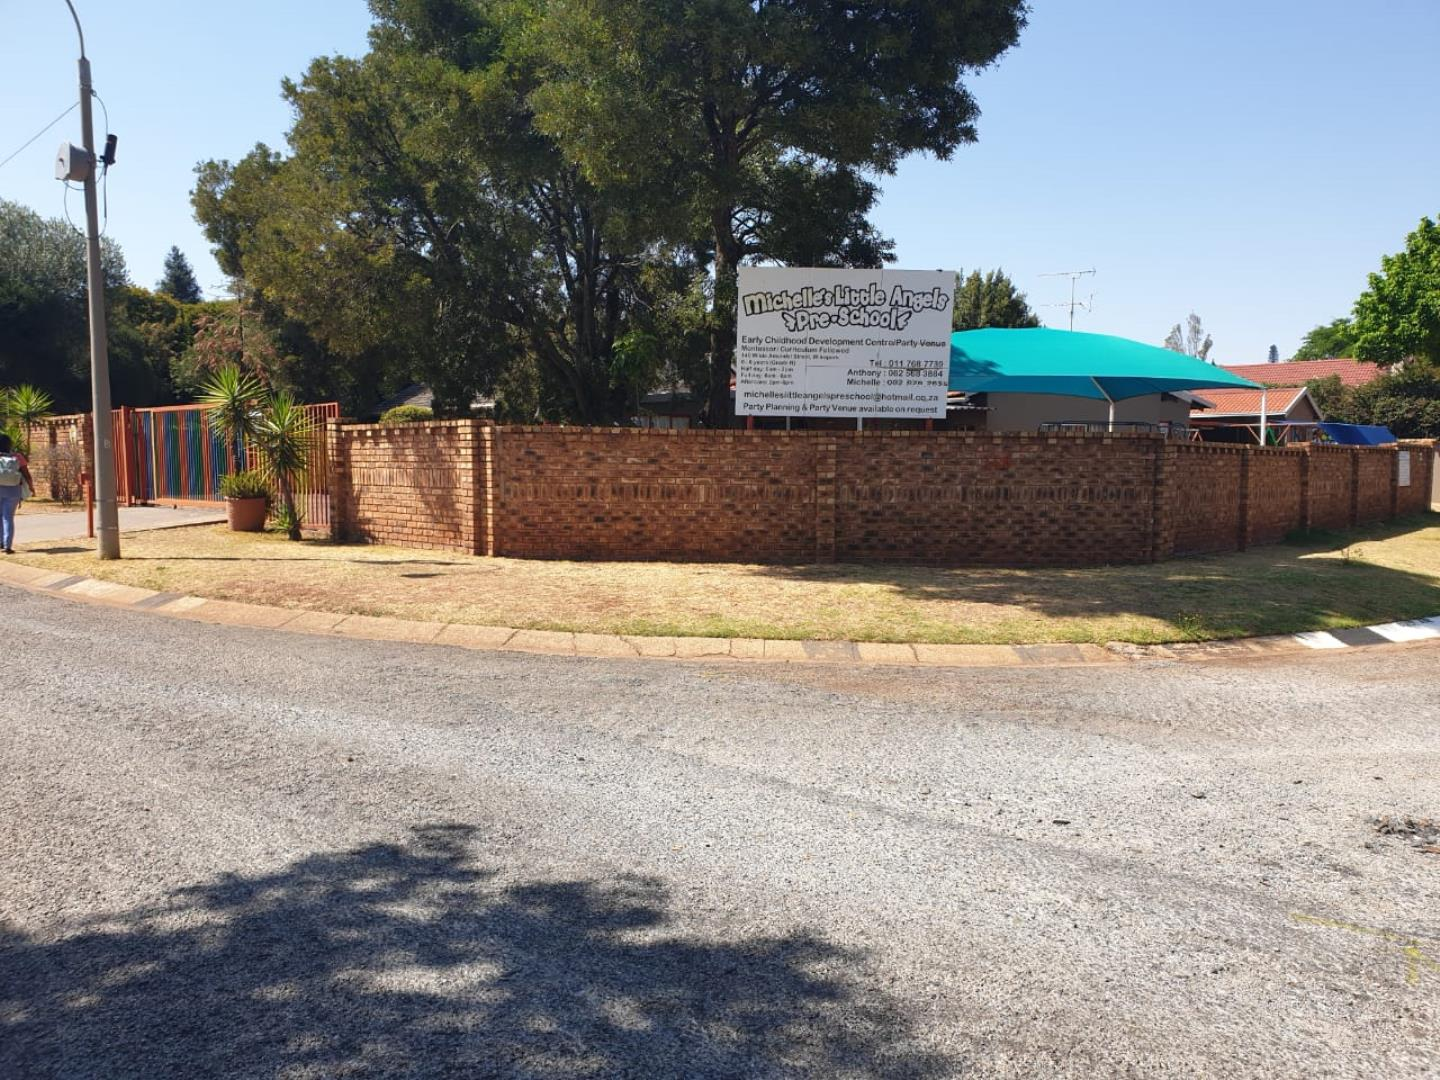 Commercial Property for Sale in Wilro Park, Roodepoort - Gauteng